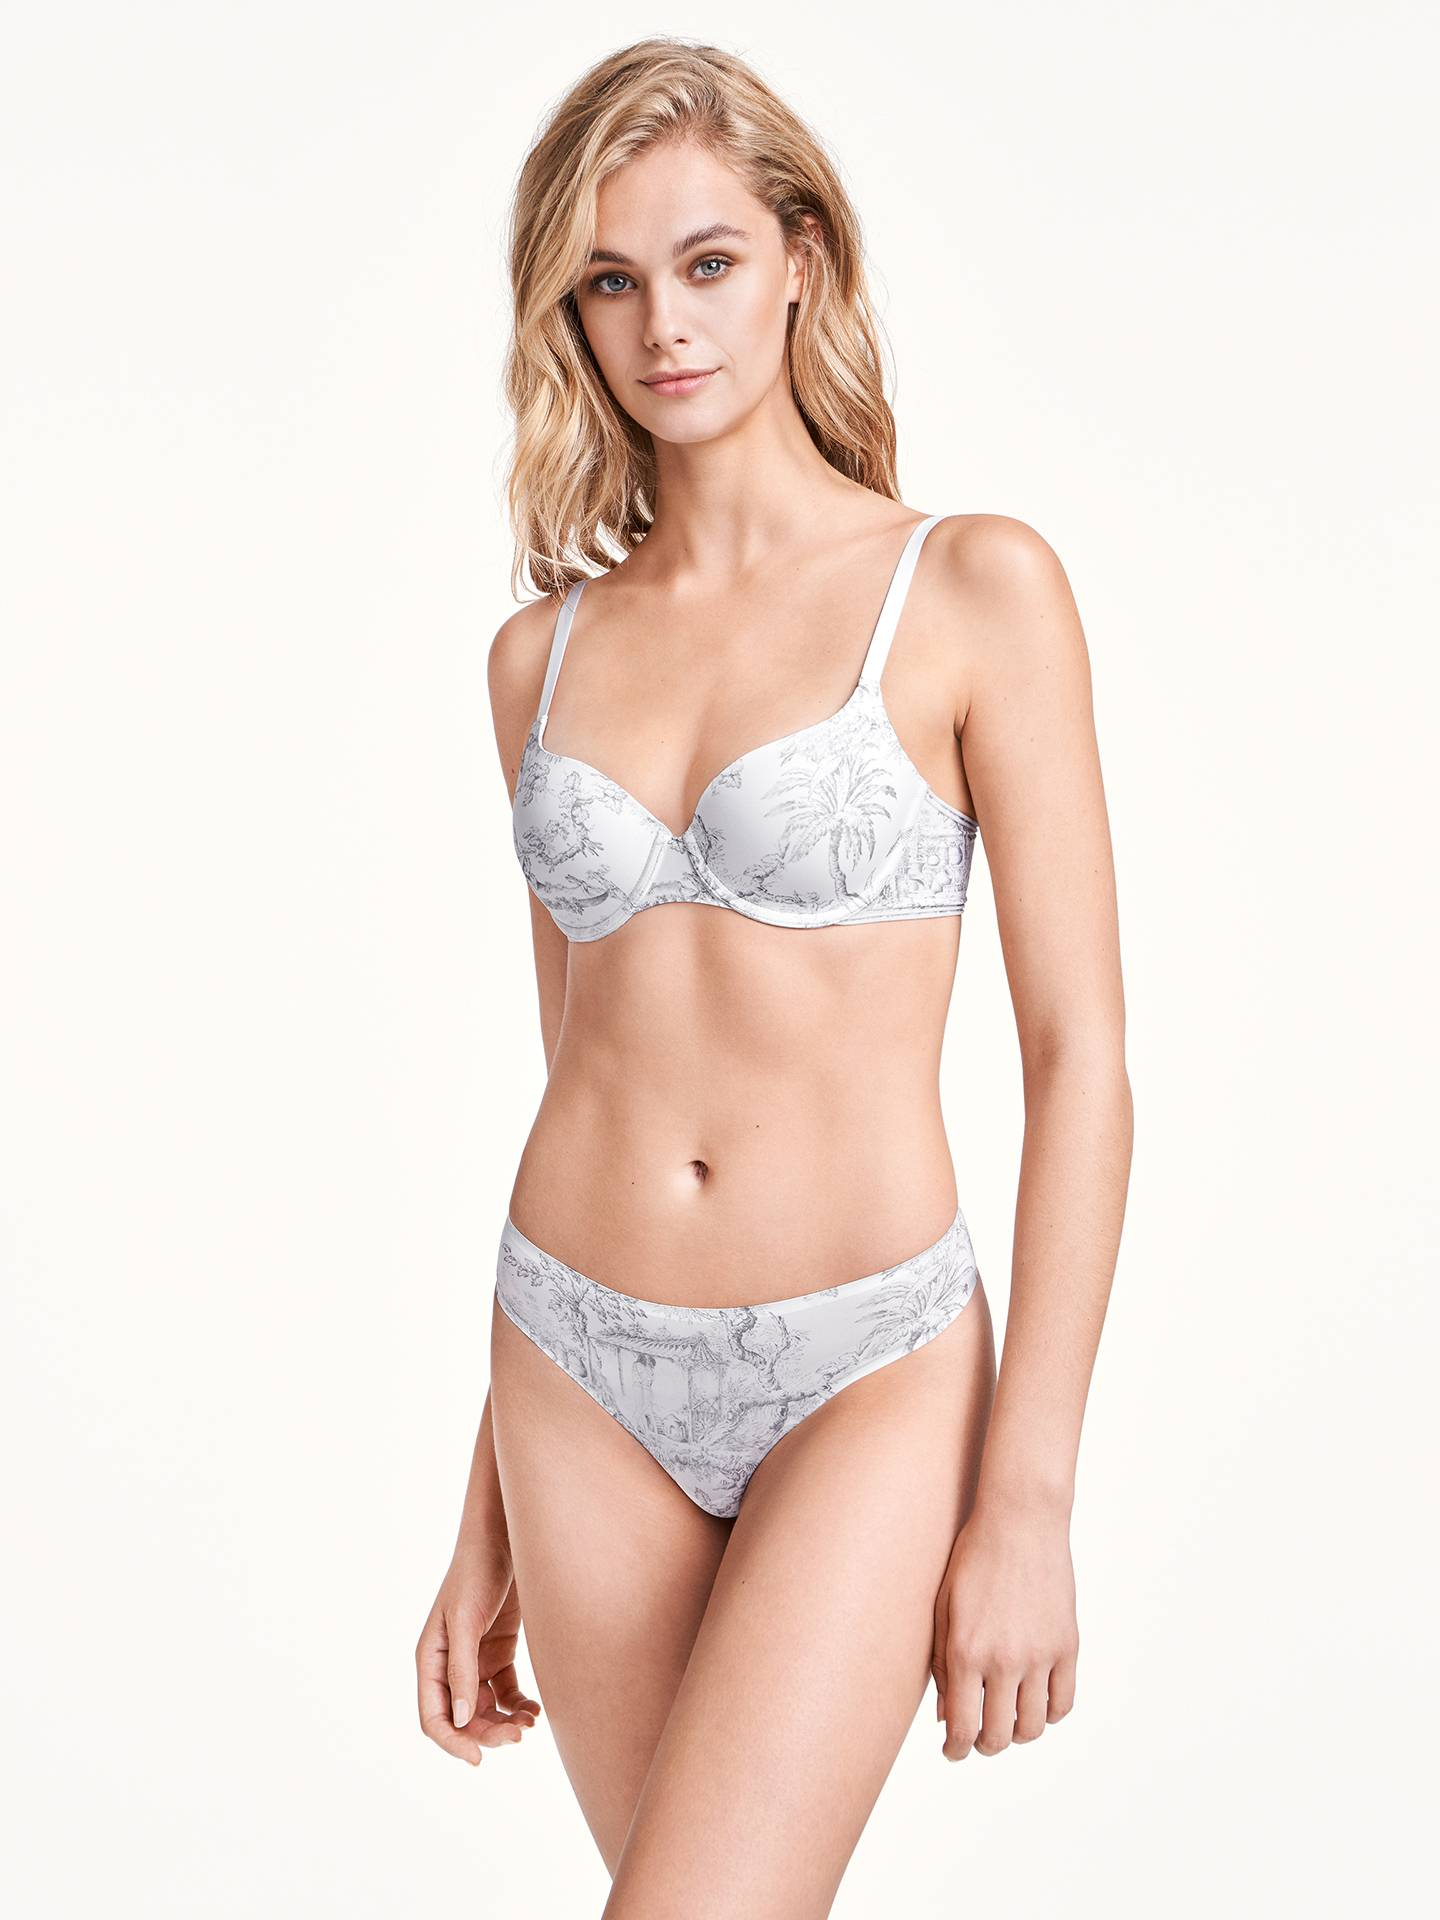 Wolford Antoinette Cup Bra - iconic white/black - 75A